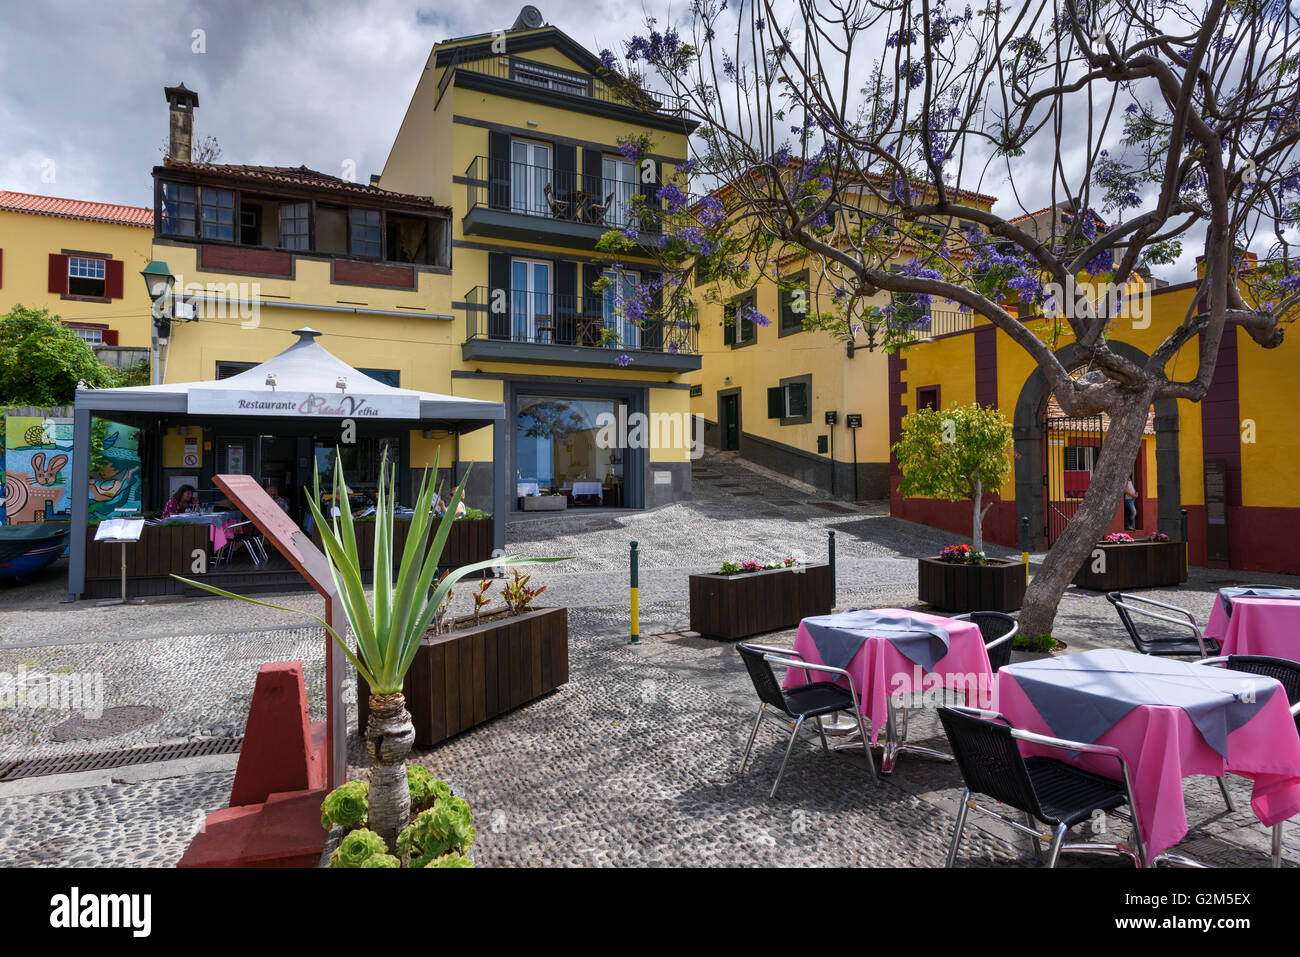 Funchal old town - Stock Image